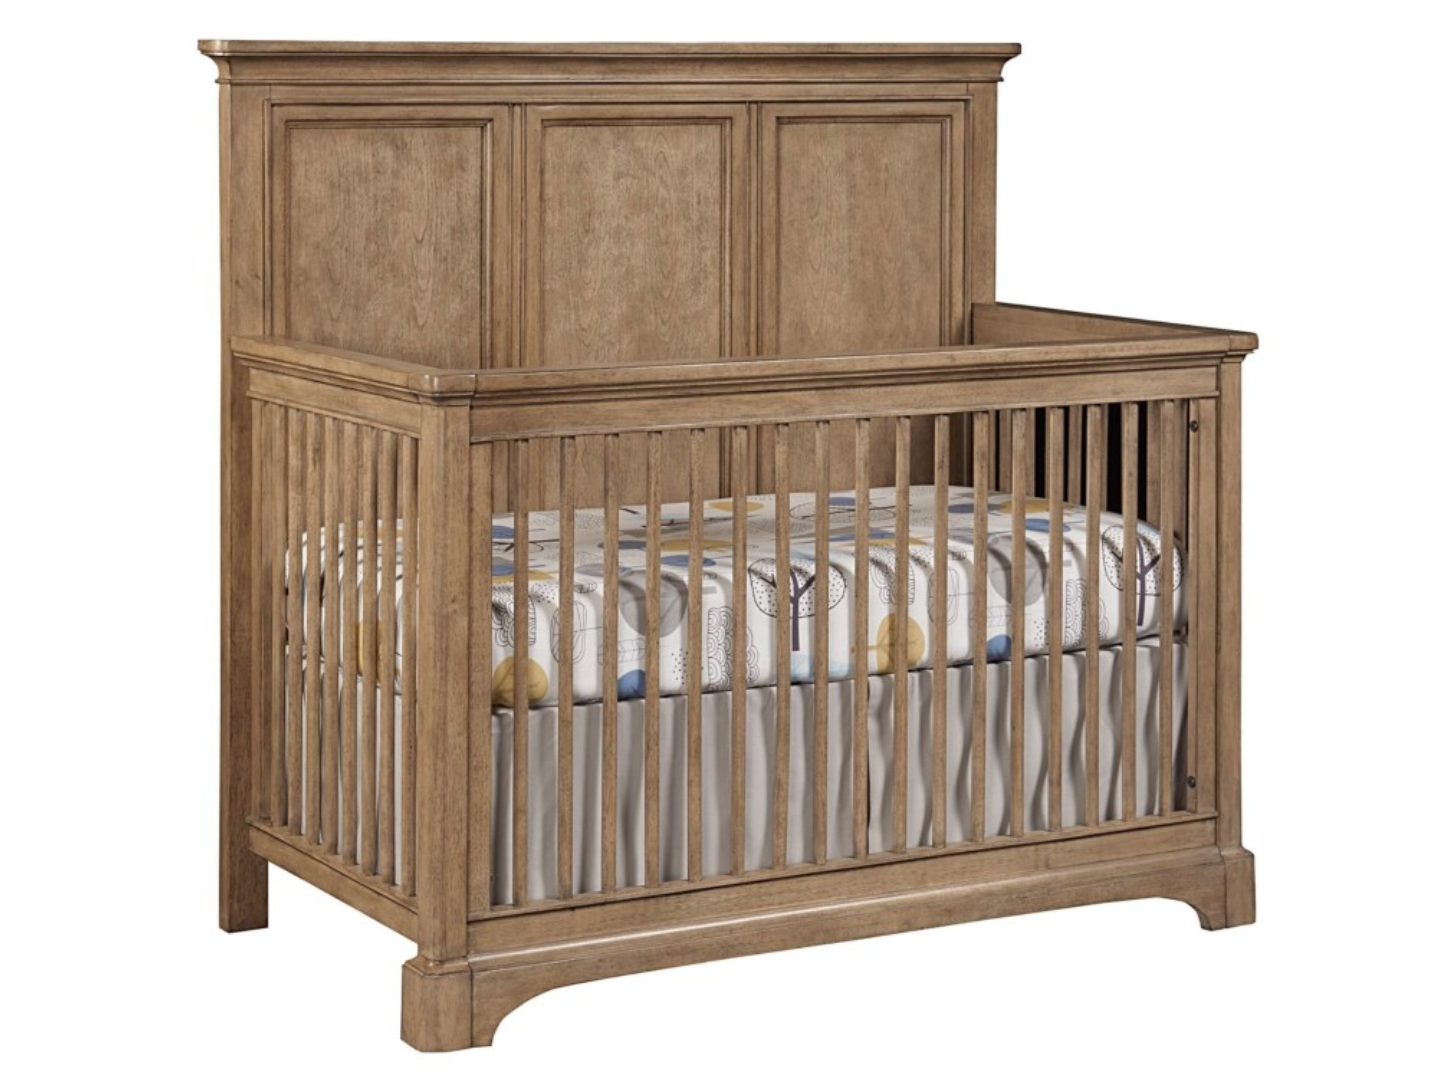 Stone & Leigh | Chelsea Square | Built to Grow Crib